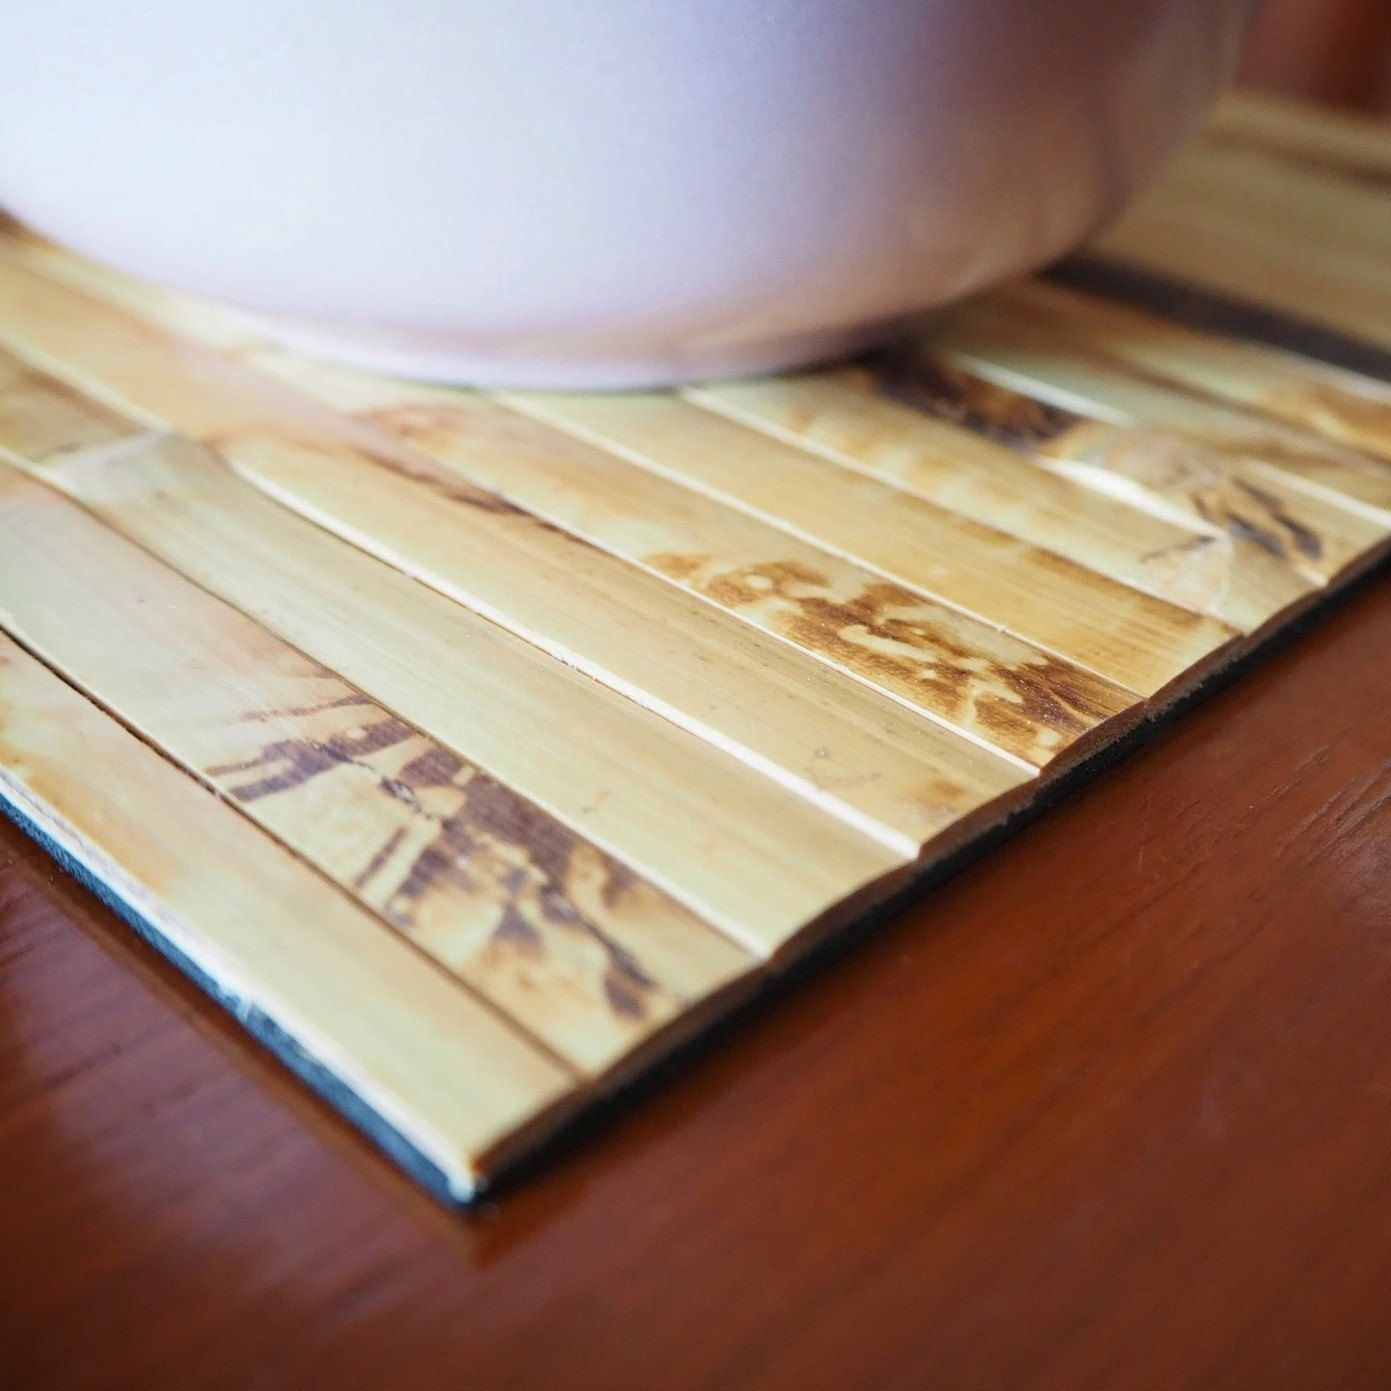 Handmade Natural Bamboo Placemats Set Of 2 Eco Friendly And Heat Resistant Table Mats 20x20cm Our Placemats Do Not Go Bamboo Placemats Bamboo Crafts Bamboo